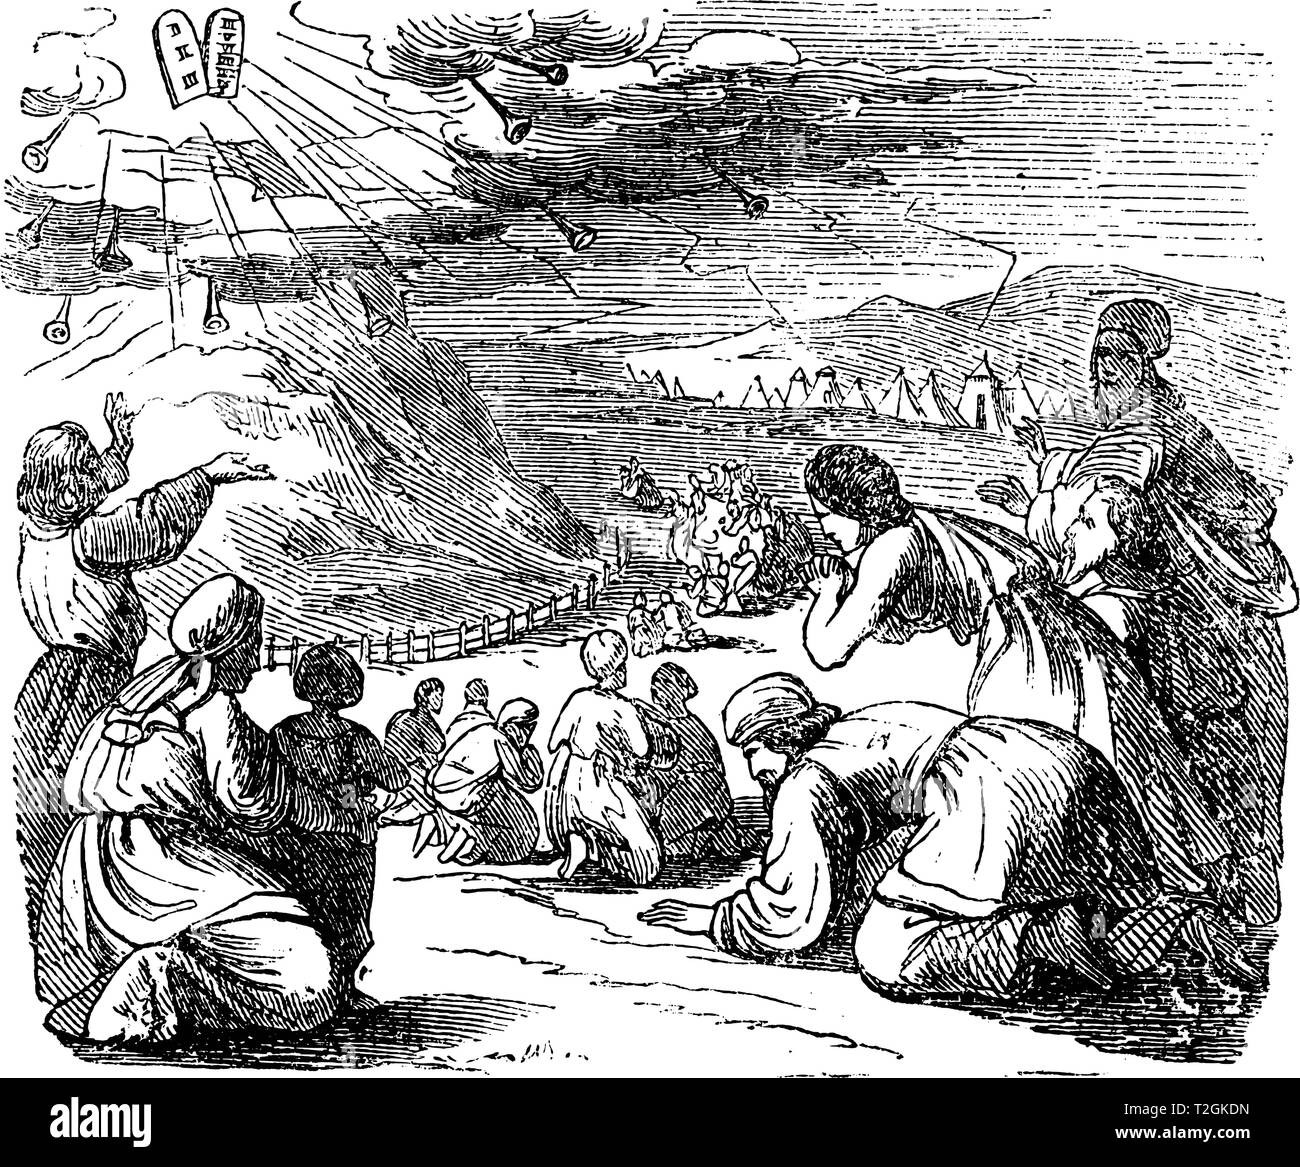 Vintage antique illustration and line drawing or engraving of biblical story of Israelites and stone tablets with ten commandments given by got on mou - Stock Image